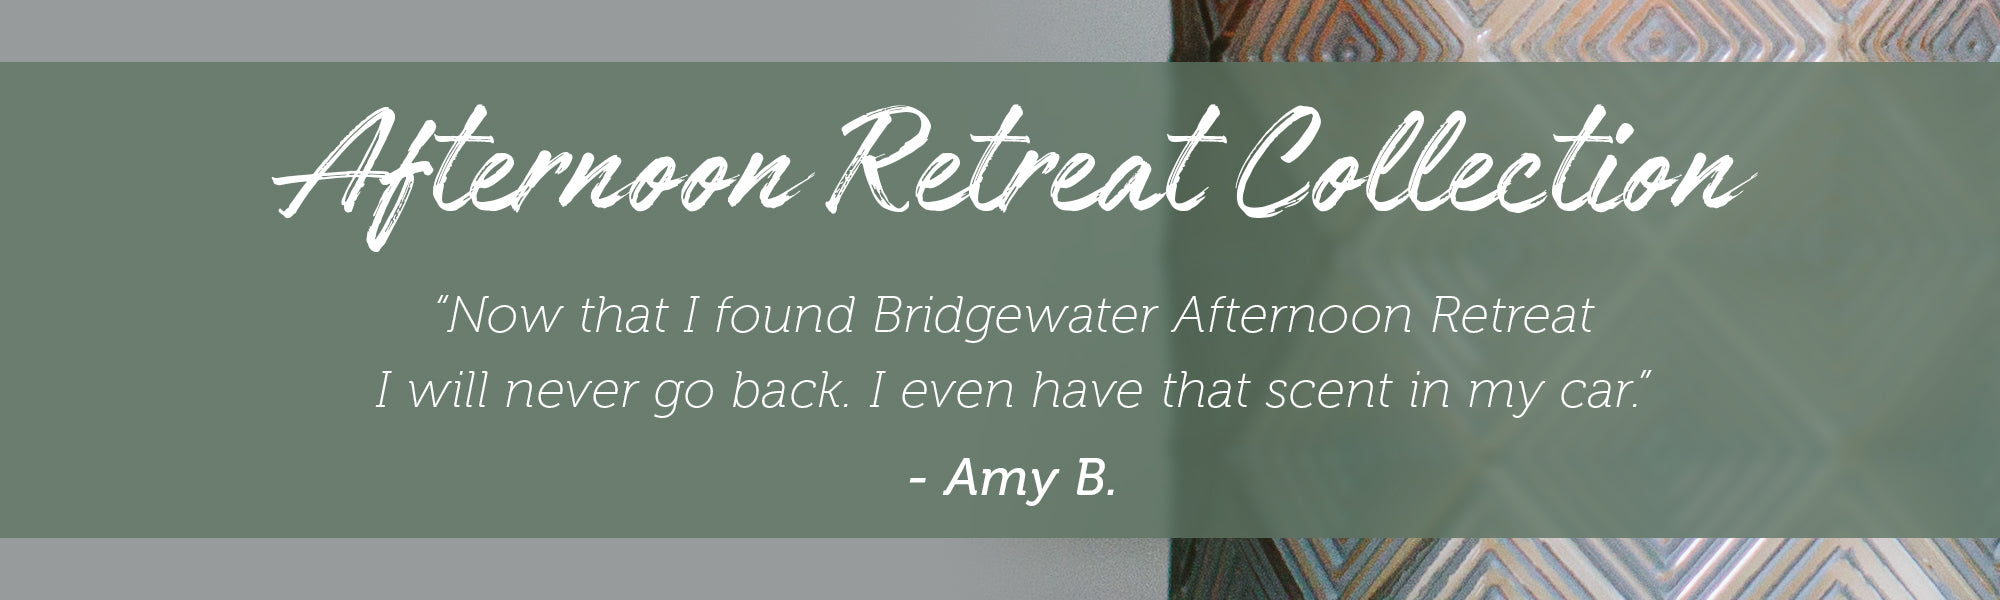 Bridgewater Afternoon Retreat Collection